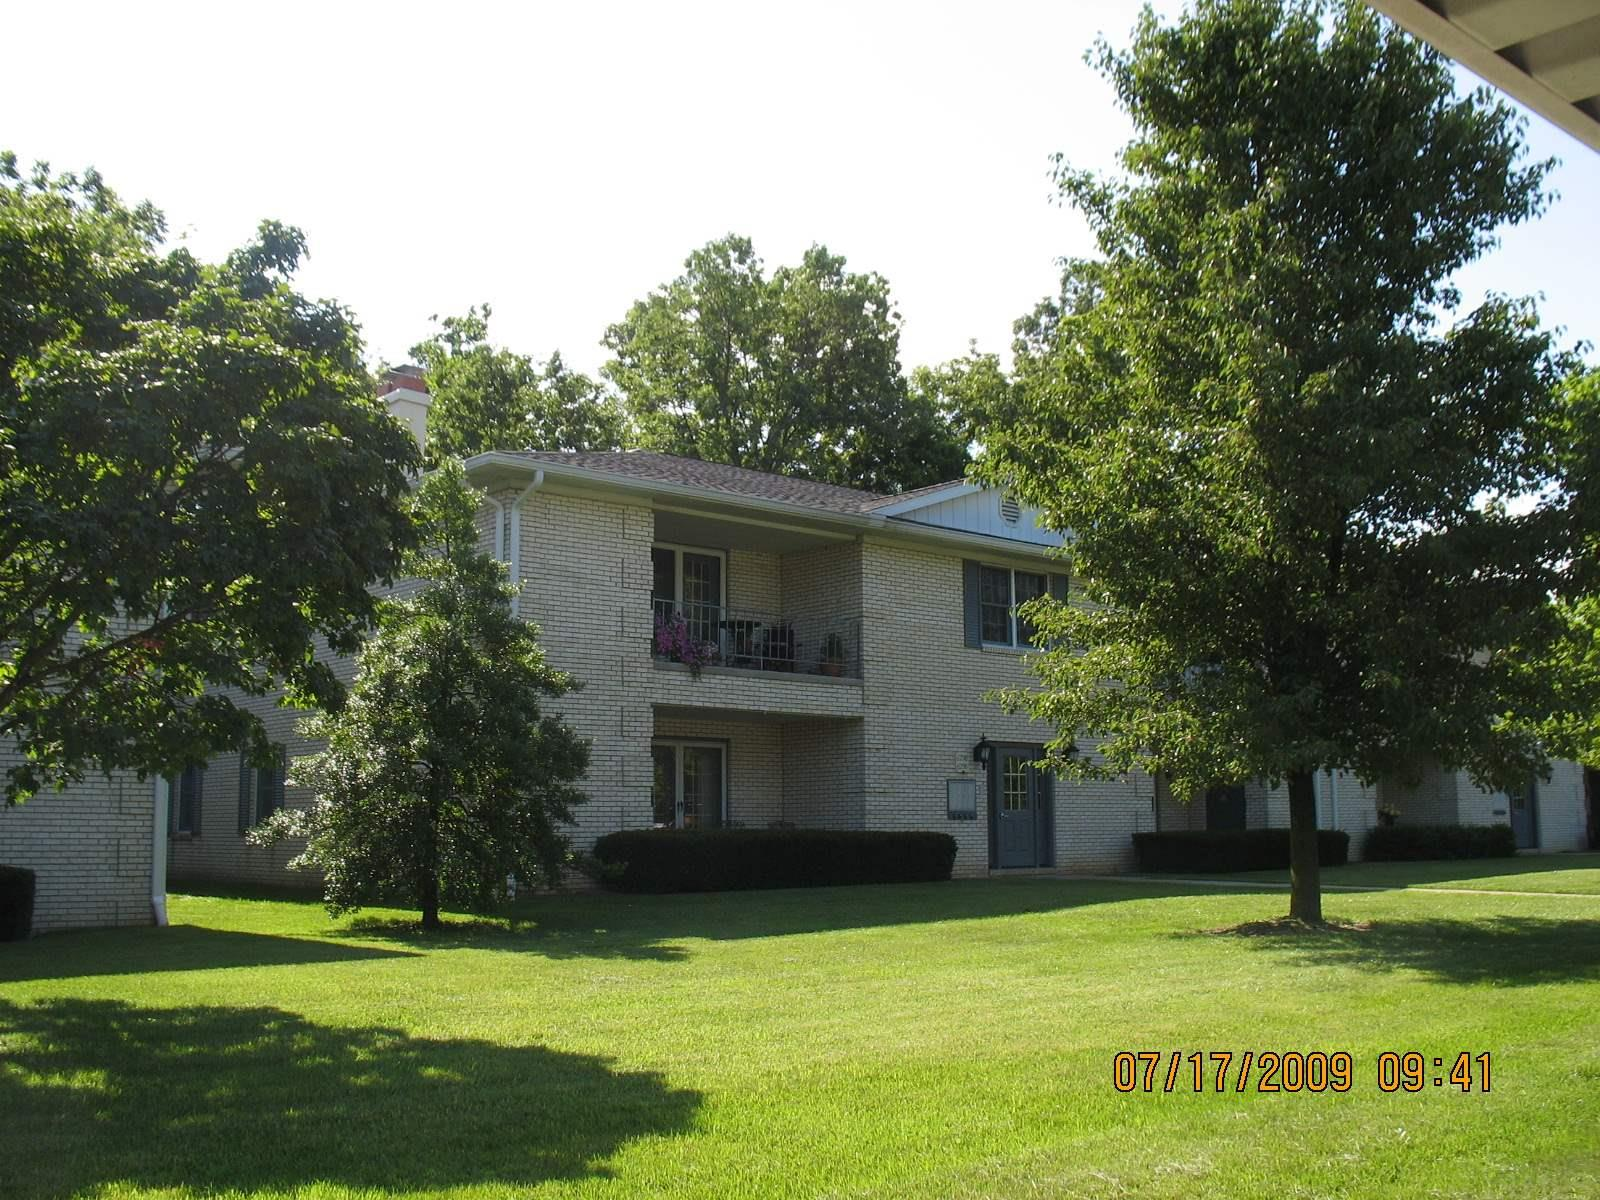 Excellent first floor location.  Beautifully decorated and updated with 1868 sf.  Seven rooms include:  Master bedroom w/walk-in shower, guest bedroom and full guest bath, living room w/wood burning fireplace and electric insert, formal dining room, kitchen, family room/den and laundry room with washer/dryer.  Unit has great traffic flow, low utilities and fees.  Carpet, tile and wood floors.  All window treatment/shutters, ceiling fans and chandeliers are included as are range, refrigerator, microwave, dishwasher, disposal, compactor, fireplace window/screen.   The 24 hour Clubhouse features an indoor pool, spa, men and women's saunas and dressing rooms, a well equipped fitness center, billiard/table tennis room, library, party room, WiFi. Patio w/grill and a championship tennis/pickle ball court.  $298 monthly homeowners association fee includes: cable tv plus all exterior maintenance and improvements to the buildings and grounds, exterior window cleaning, landscaping, snow removal, two assigned carports and full use of the Clubhouse.  2019 payable real estate tax, w/homestead exemption is $1393. Monthly electric average $92, per Vectren. $46 average per month for water/sewer, per HOA ****Room sizes are approximate****